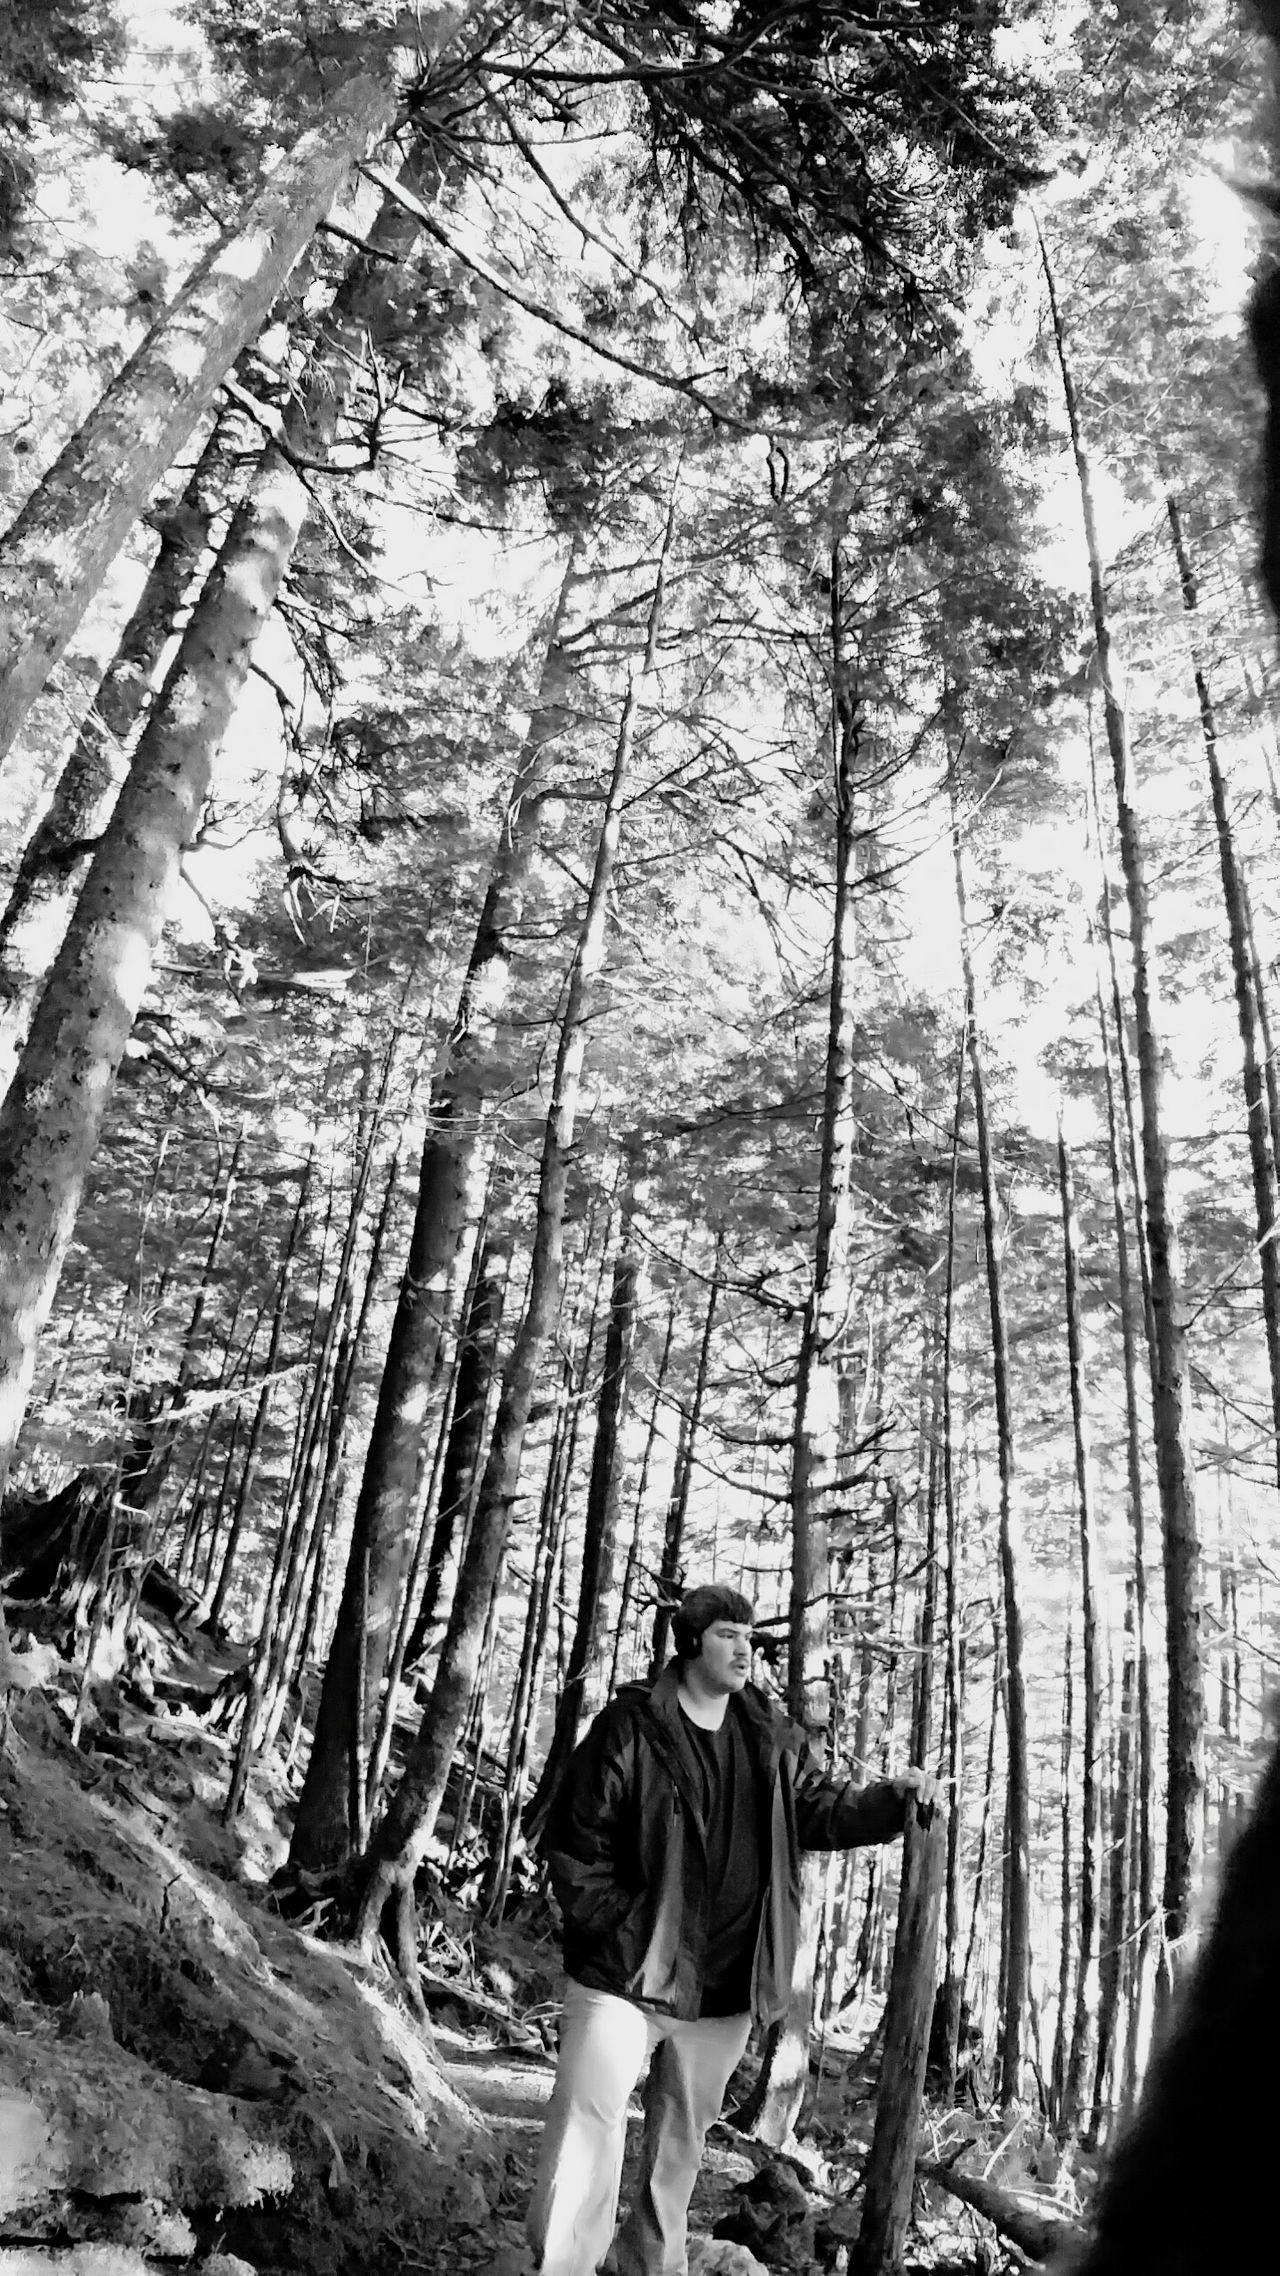 Moments Of Life Remembrance Tree One Man Only Outdoors EyeEm Nature Lover Black And White Photography Forest Only Men Low Angle View Thats Me! Brisk Walk Beauty In Nature EyeEm Best Shots Selfienation took a moment to center myself